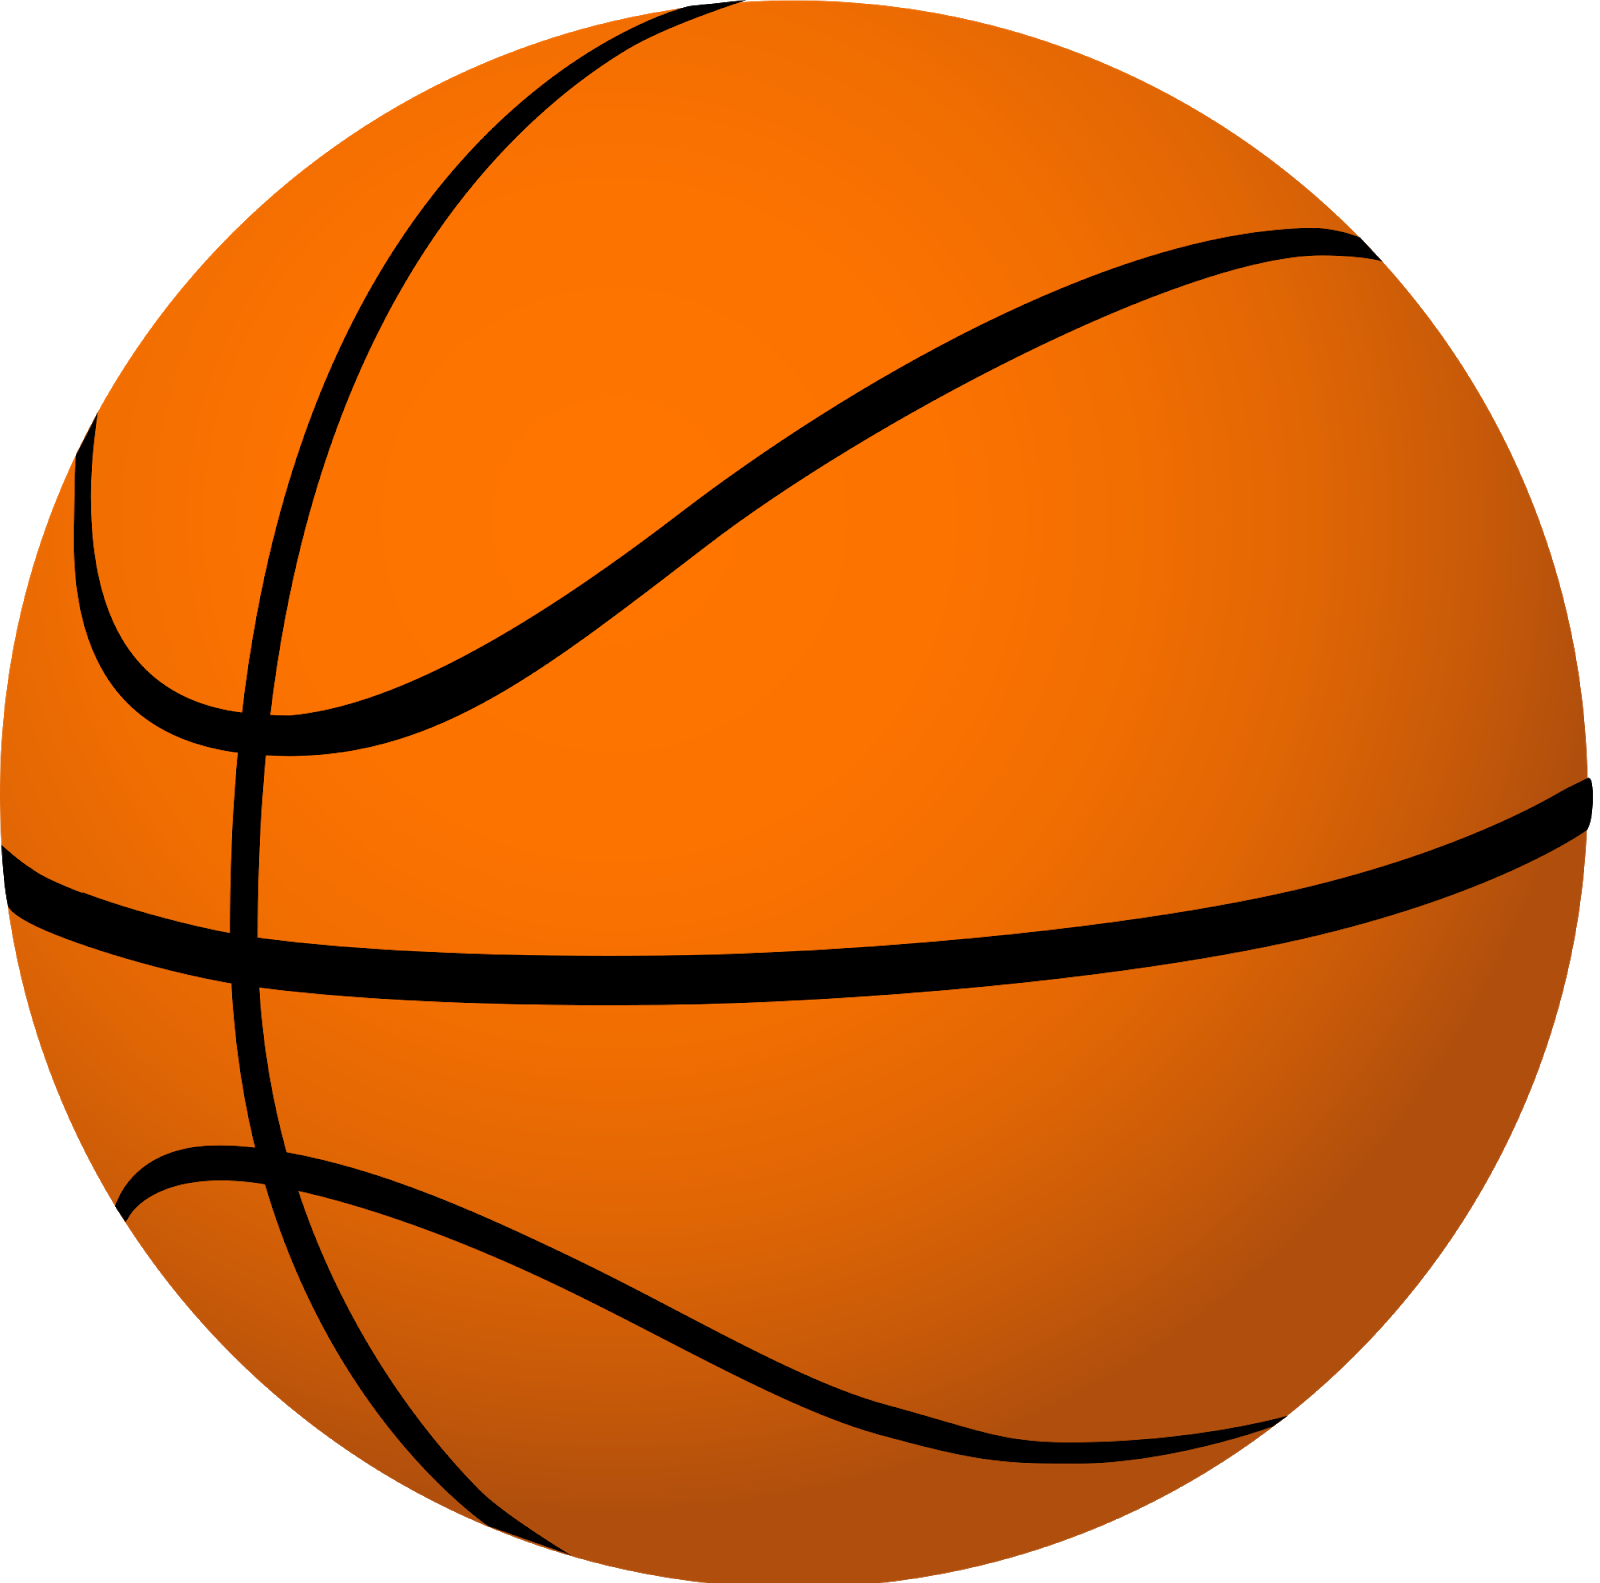 Basketball recess clipart clipart black and white download Ms. Sypniewski's 3rd Grade Class: Basketball, Pi Day and Opinion Writing clipart black and white download